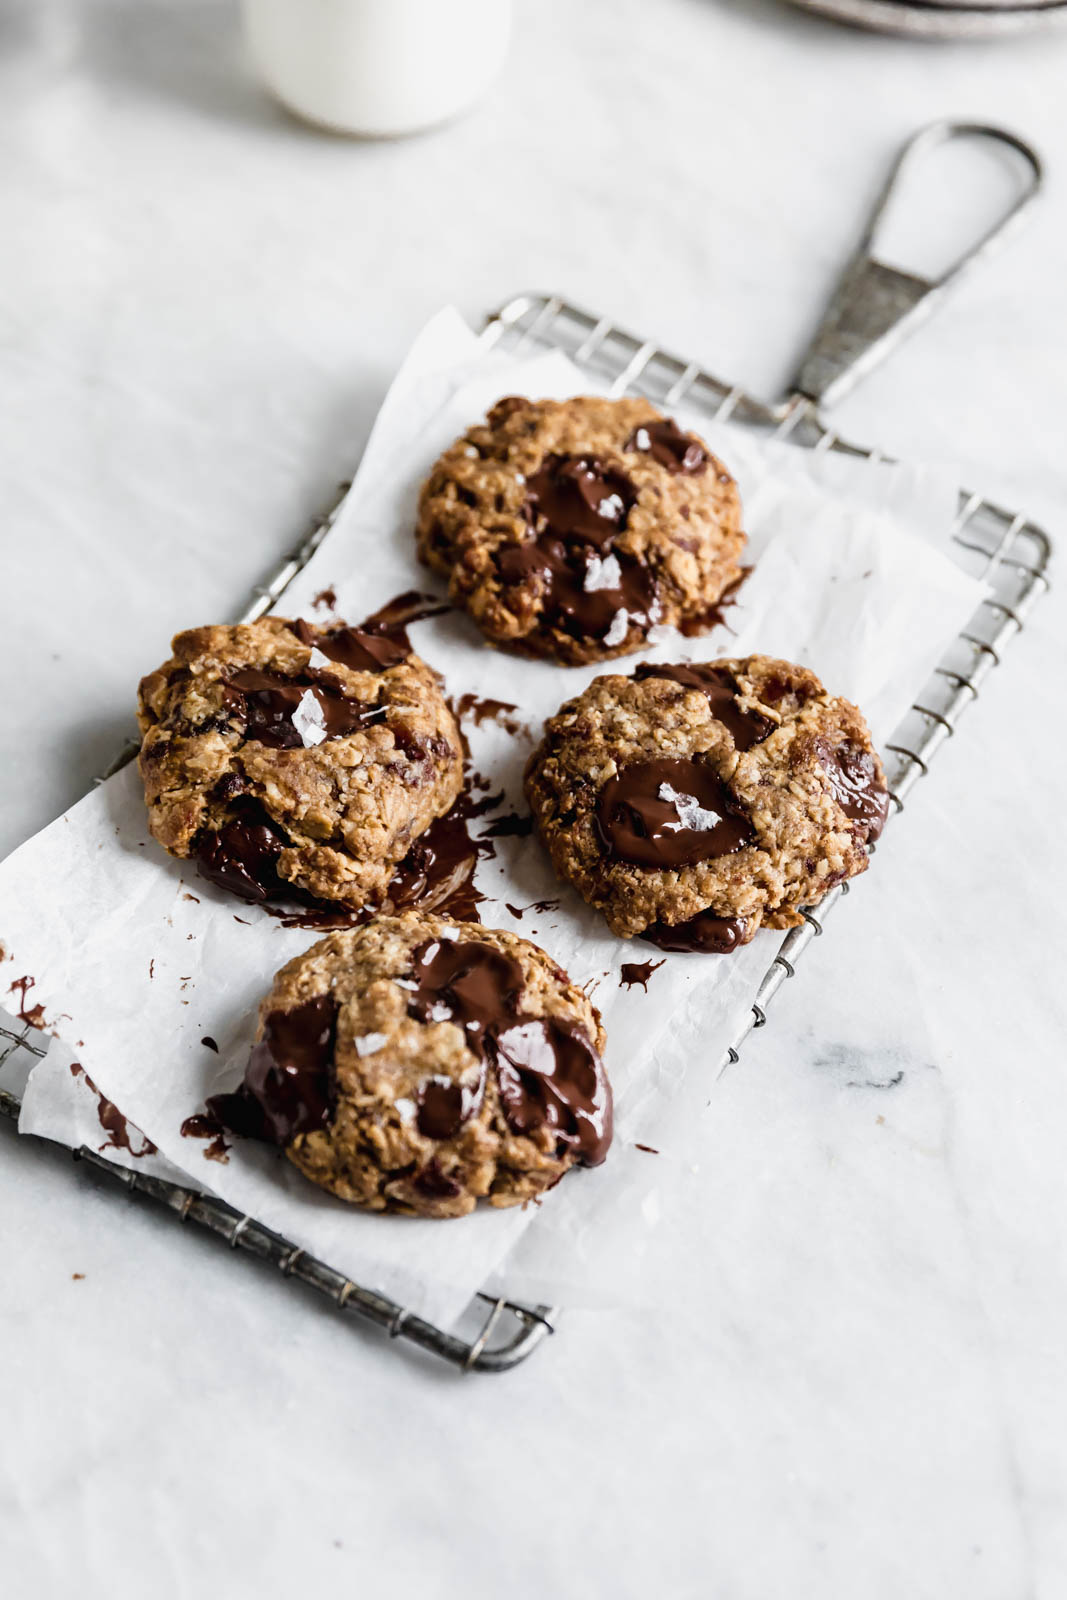 Yes these Tahini Oatmeal Chocolate Chunk Cookies are vegan, gluten free, and refined sugar free, but they sure as heck don't taste like health food. DROOL.